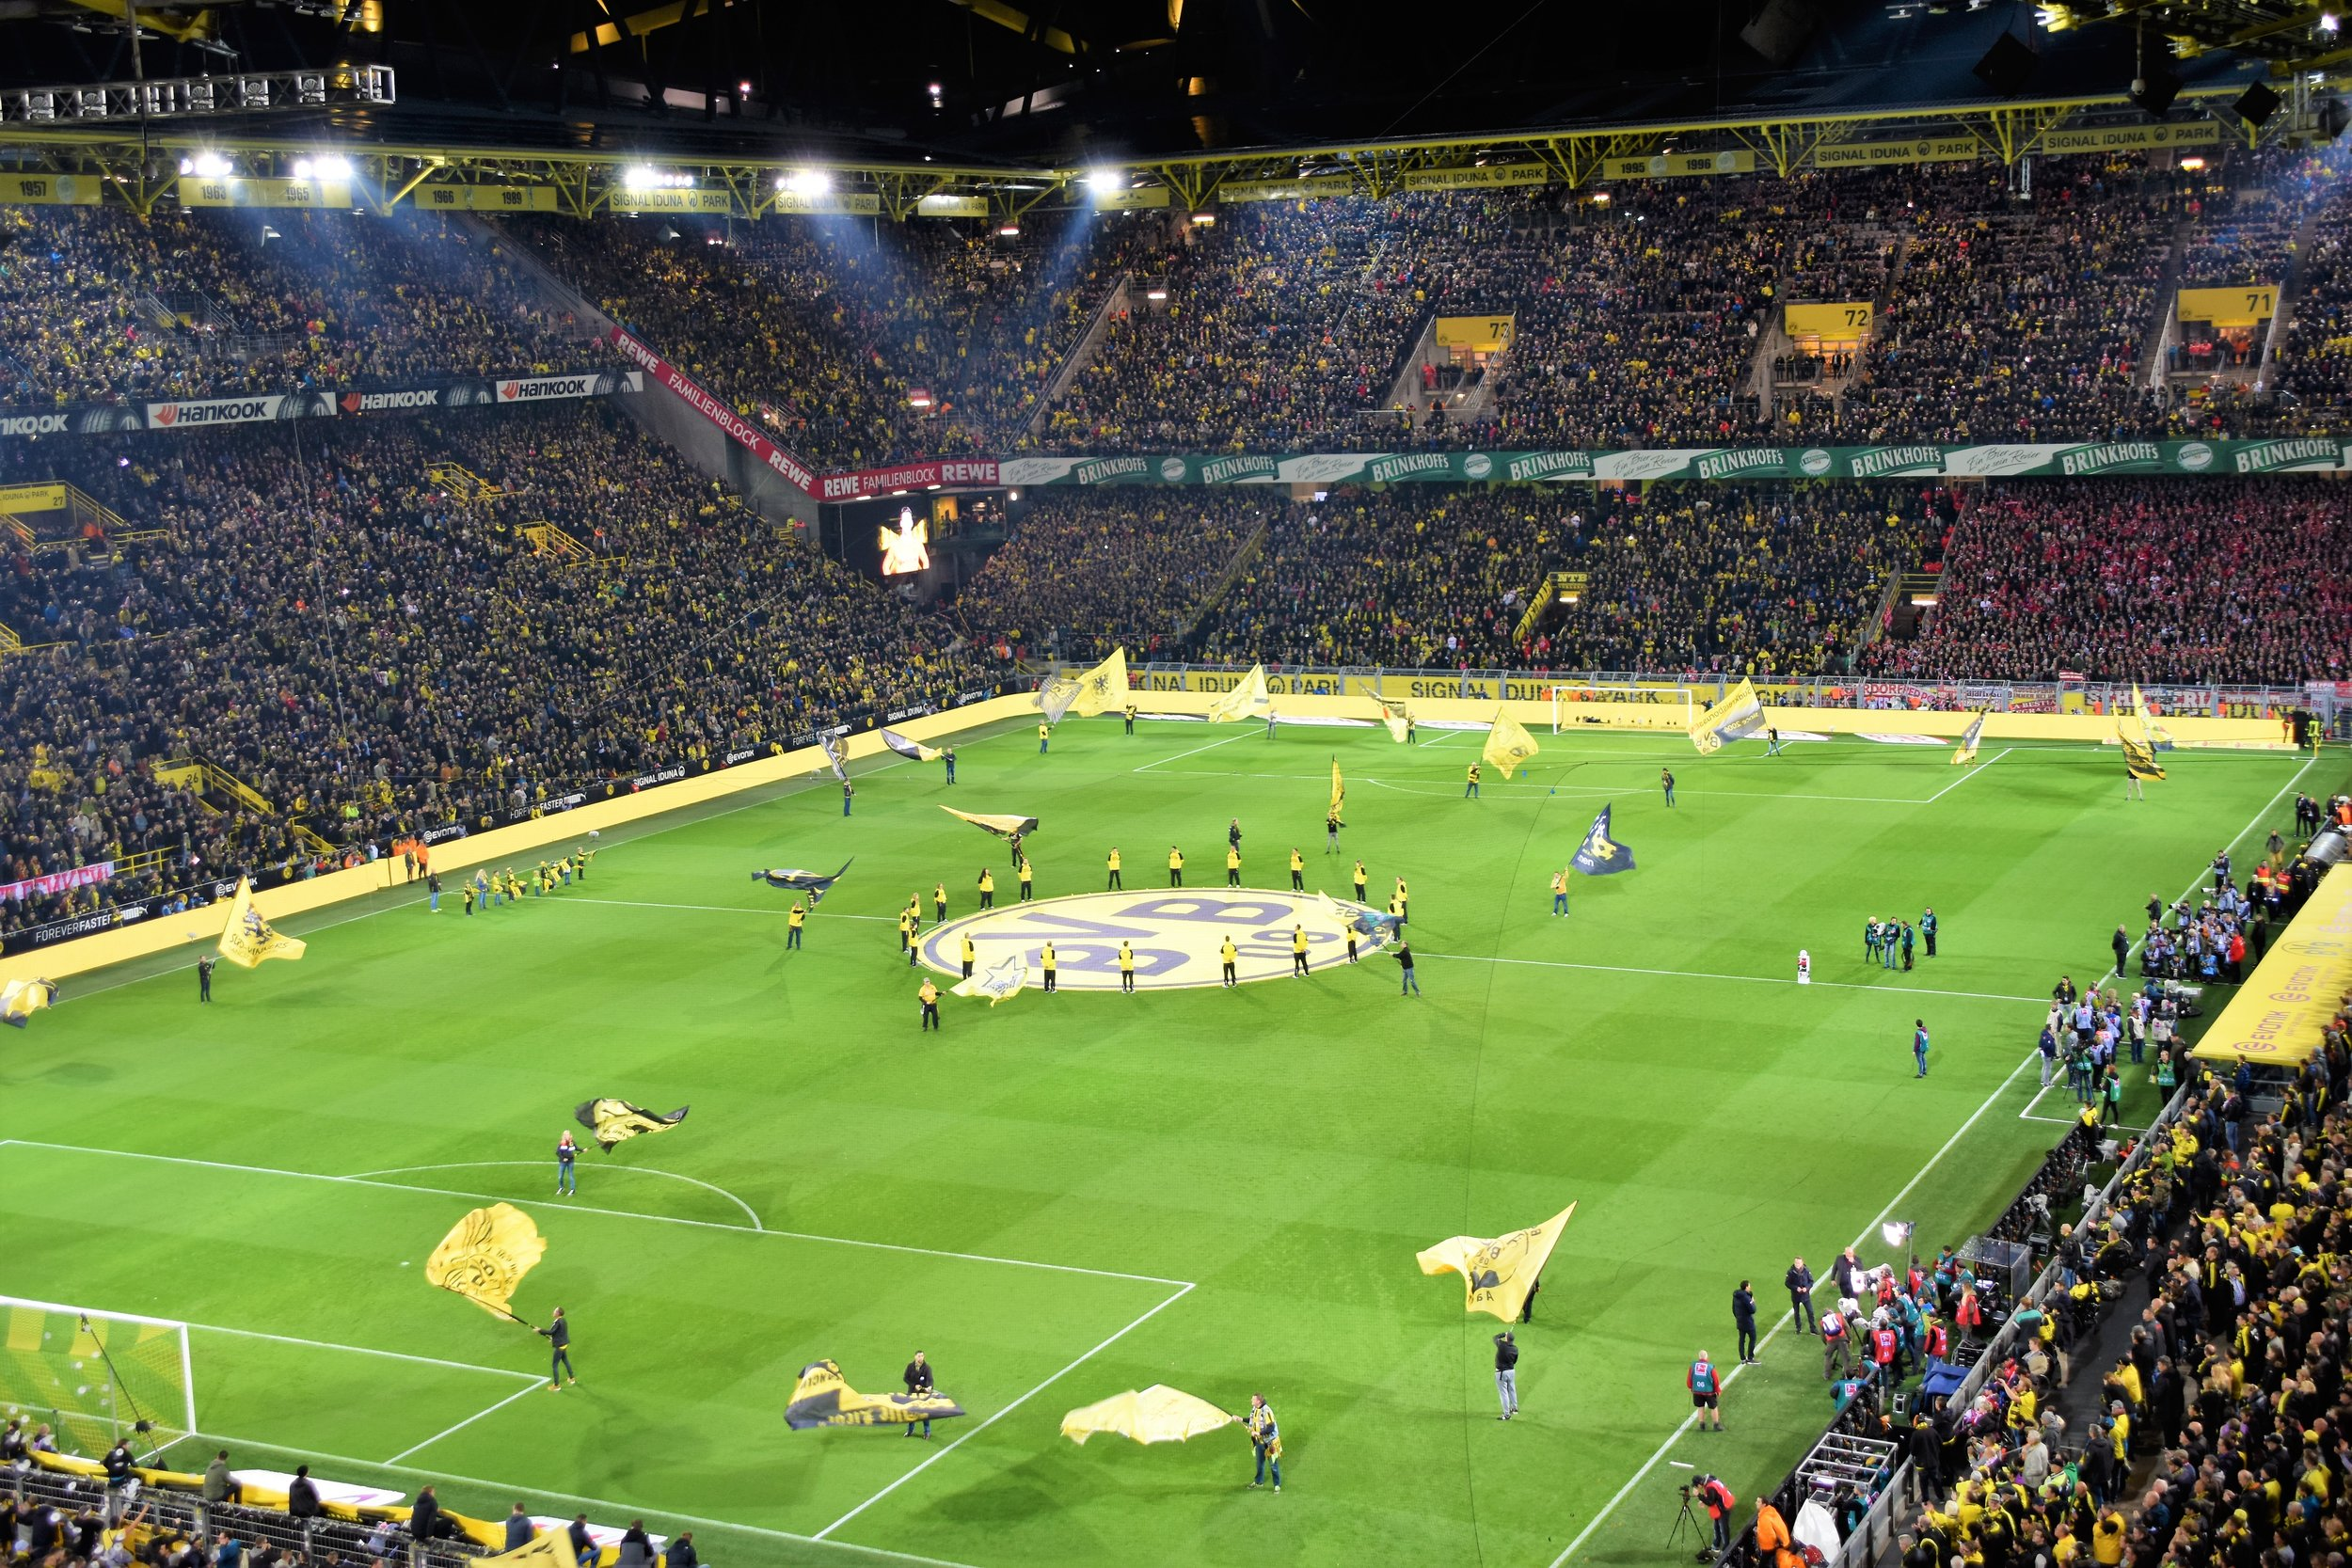 Bundesliga on the rise in the football revenue race - Real Madrid beat Man United to club revenue top spot